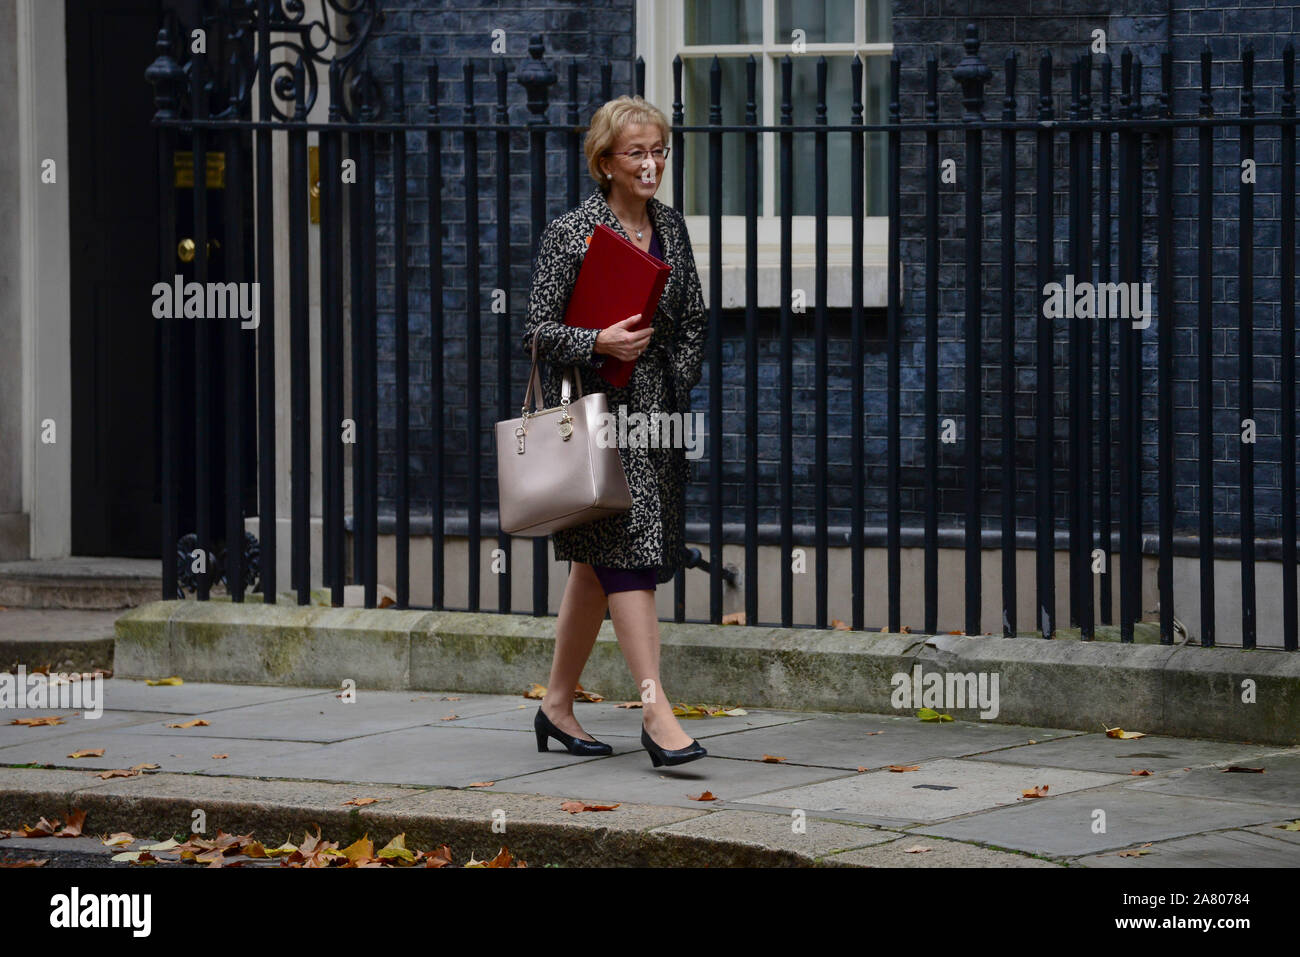 London, UK. 5th November 2019. Andrea Leadsom, Secretary of State for Business leaving Downing Street after a Cabinet Meeting. Claire Doherty/Alamy Live News. Stock Photo